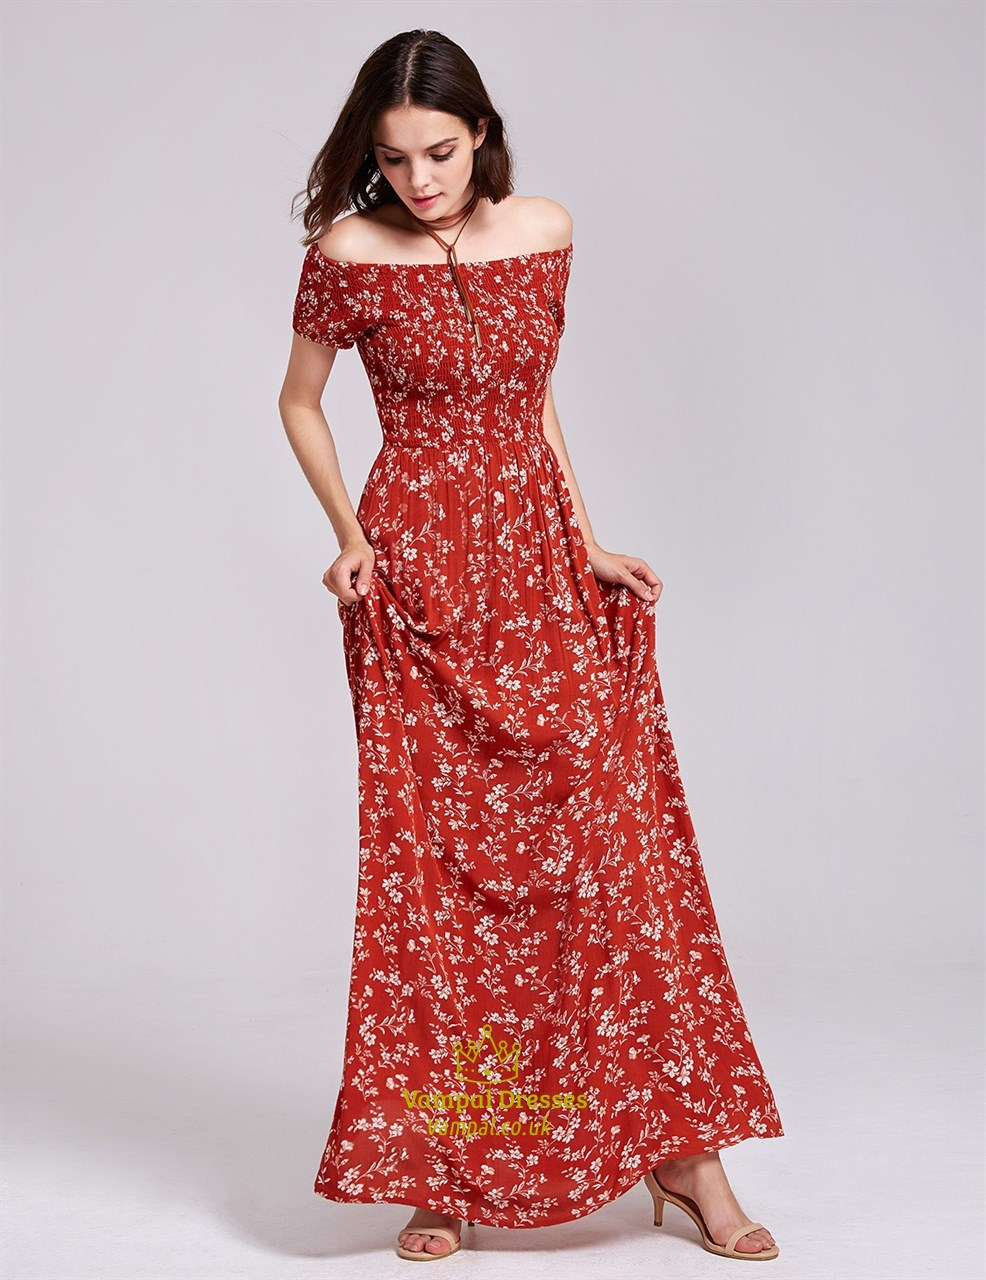 Off Shoulder A-Line Short Sleeve Floor Length Floral Print Maxi Dress | Vampal Dresses